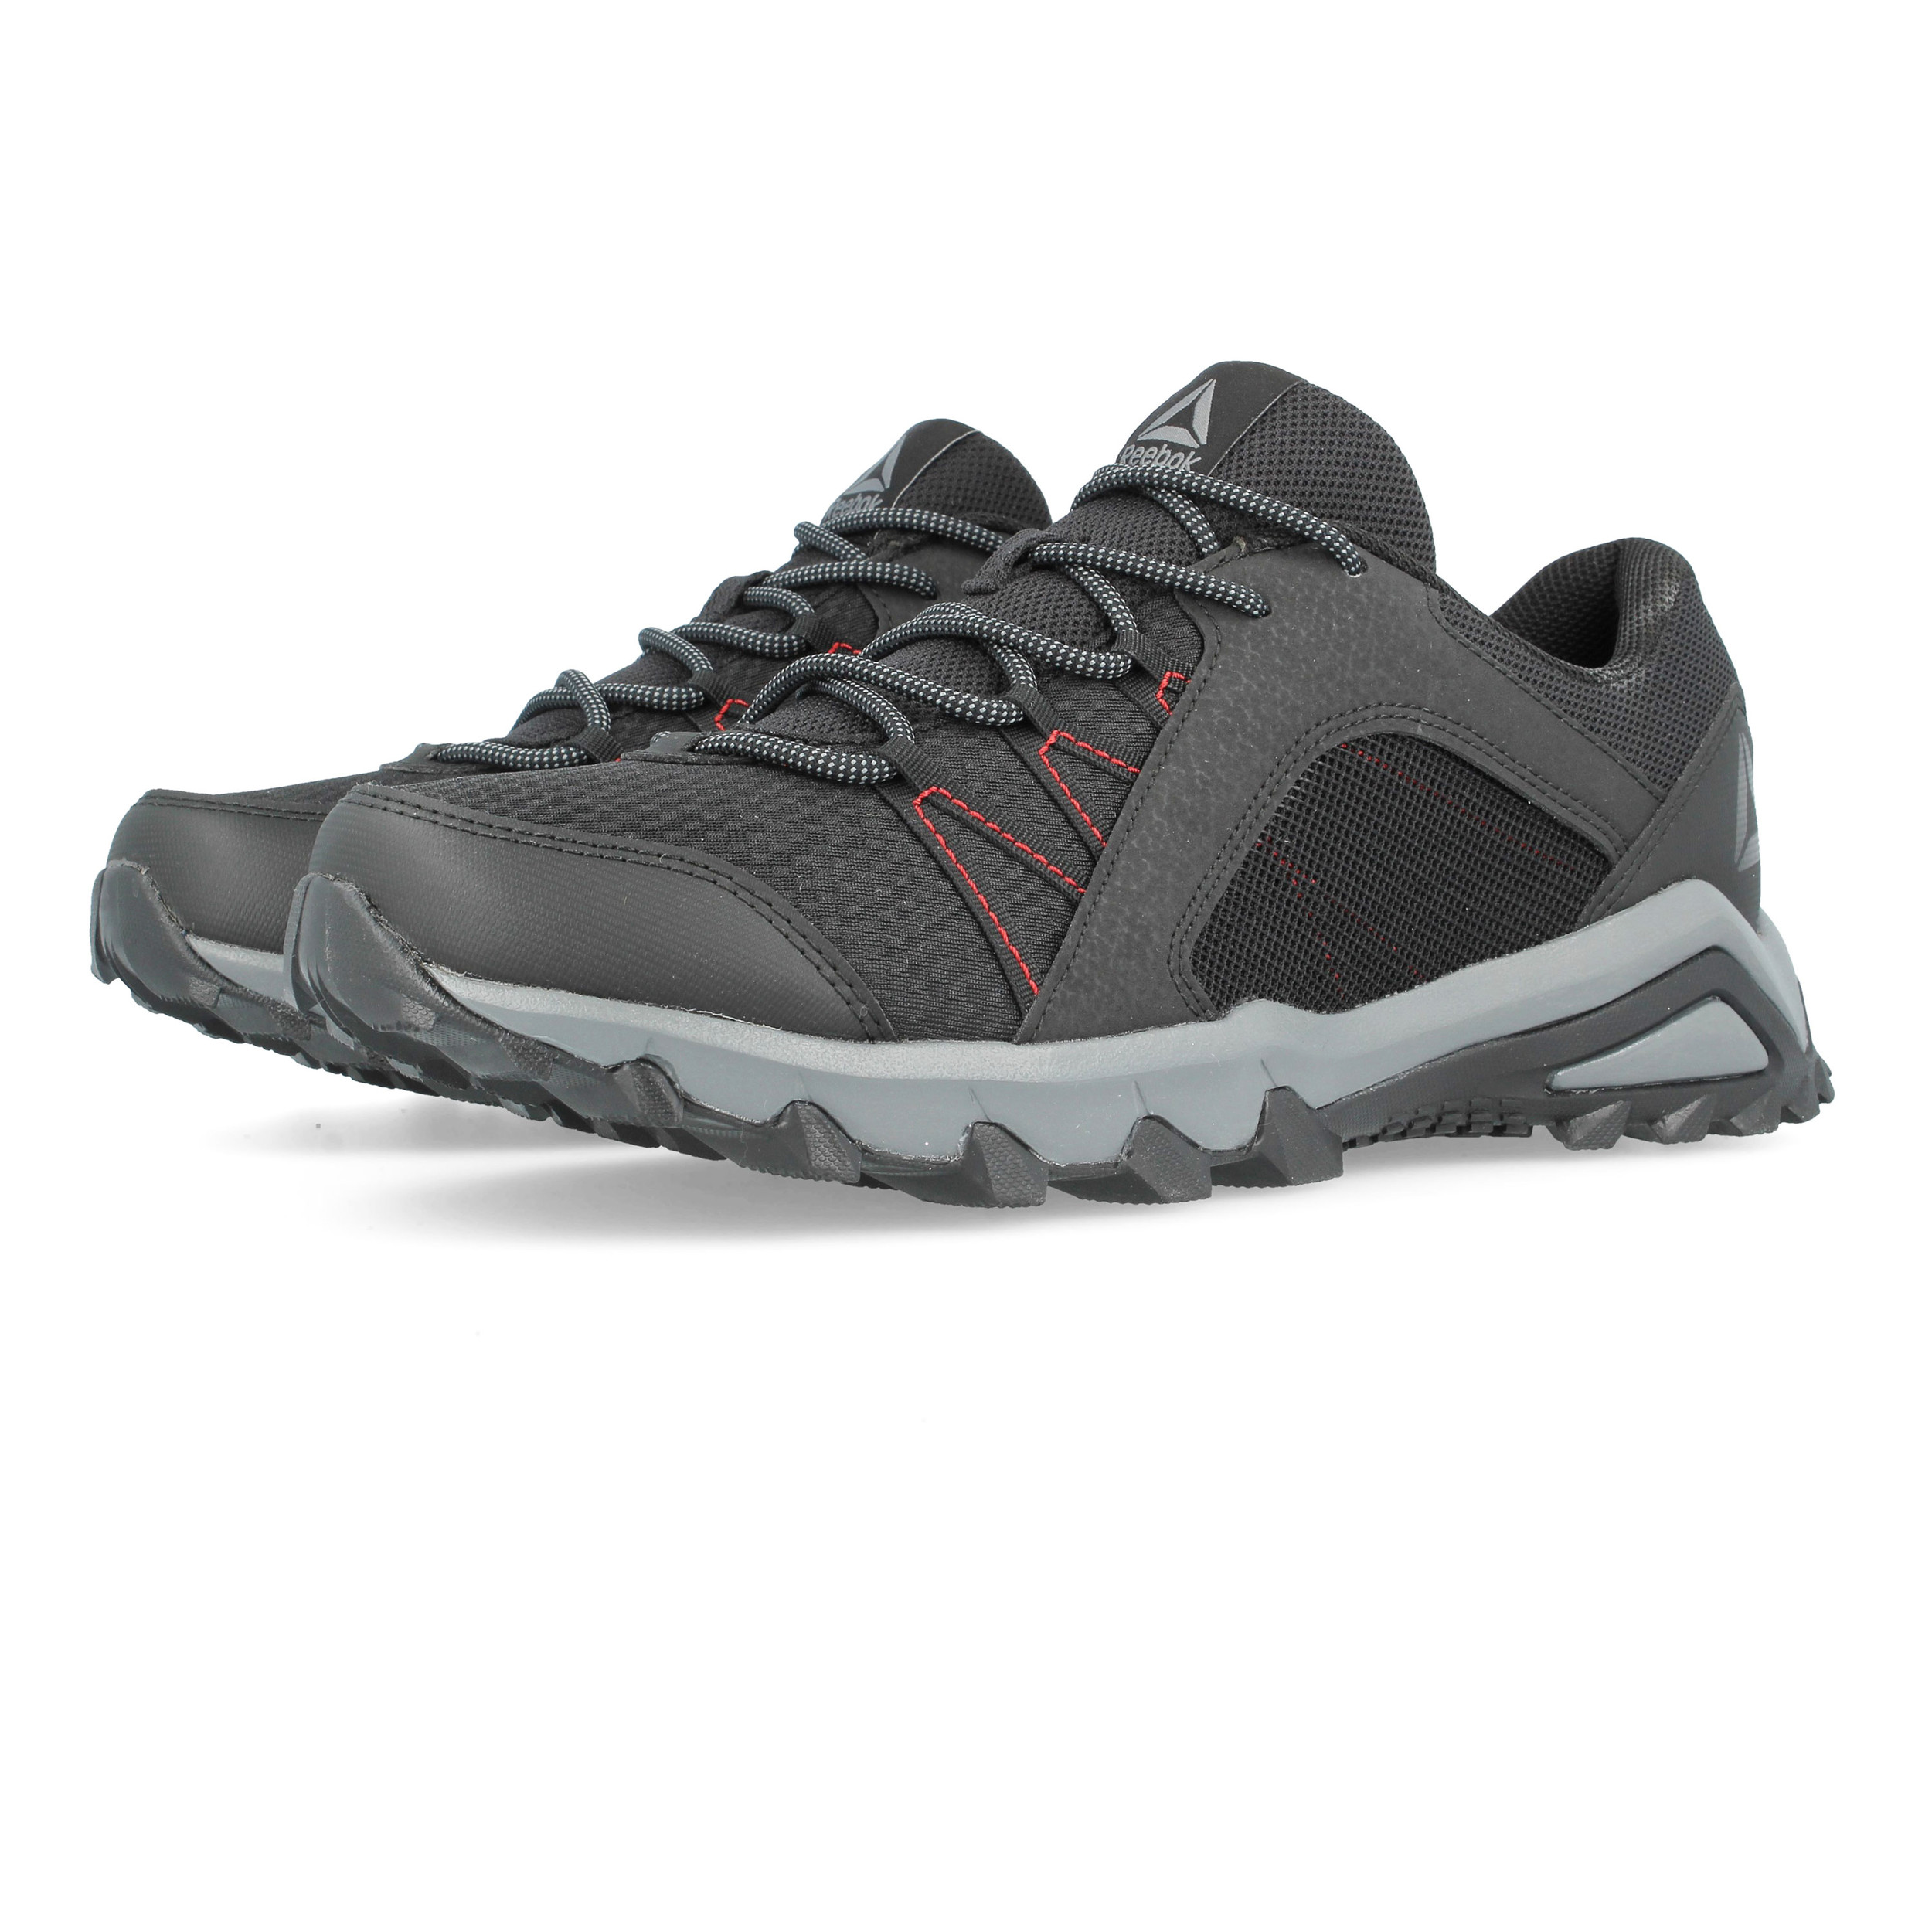 Details about Reebok Mens TrailGrip 6.0 Hiking Shoes Black Sports Outdoors  Breathable 69a1701ae